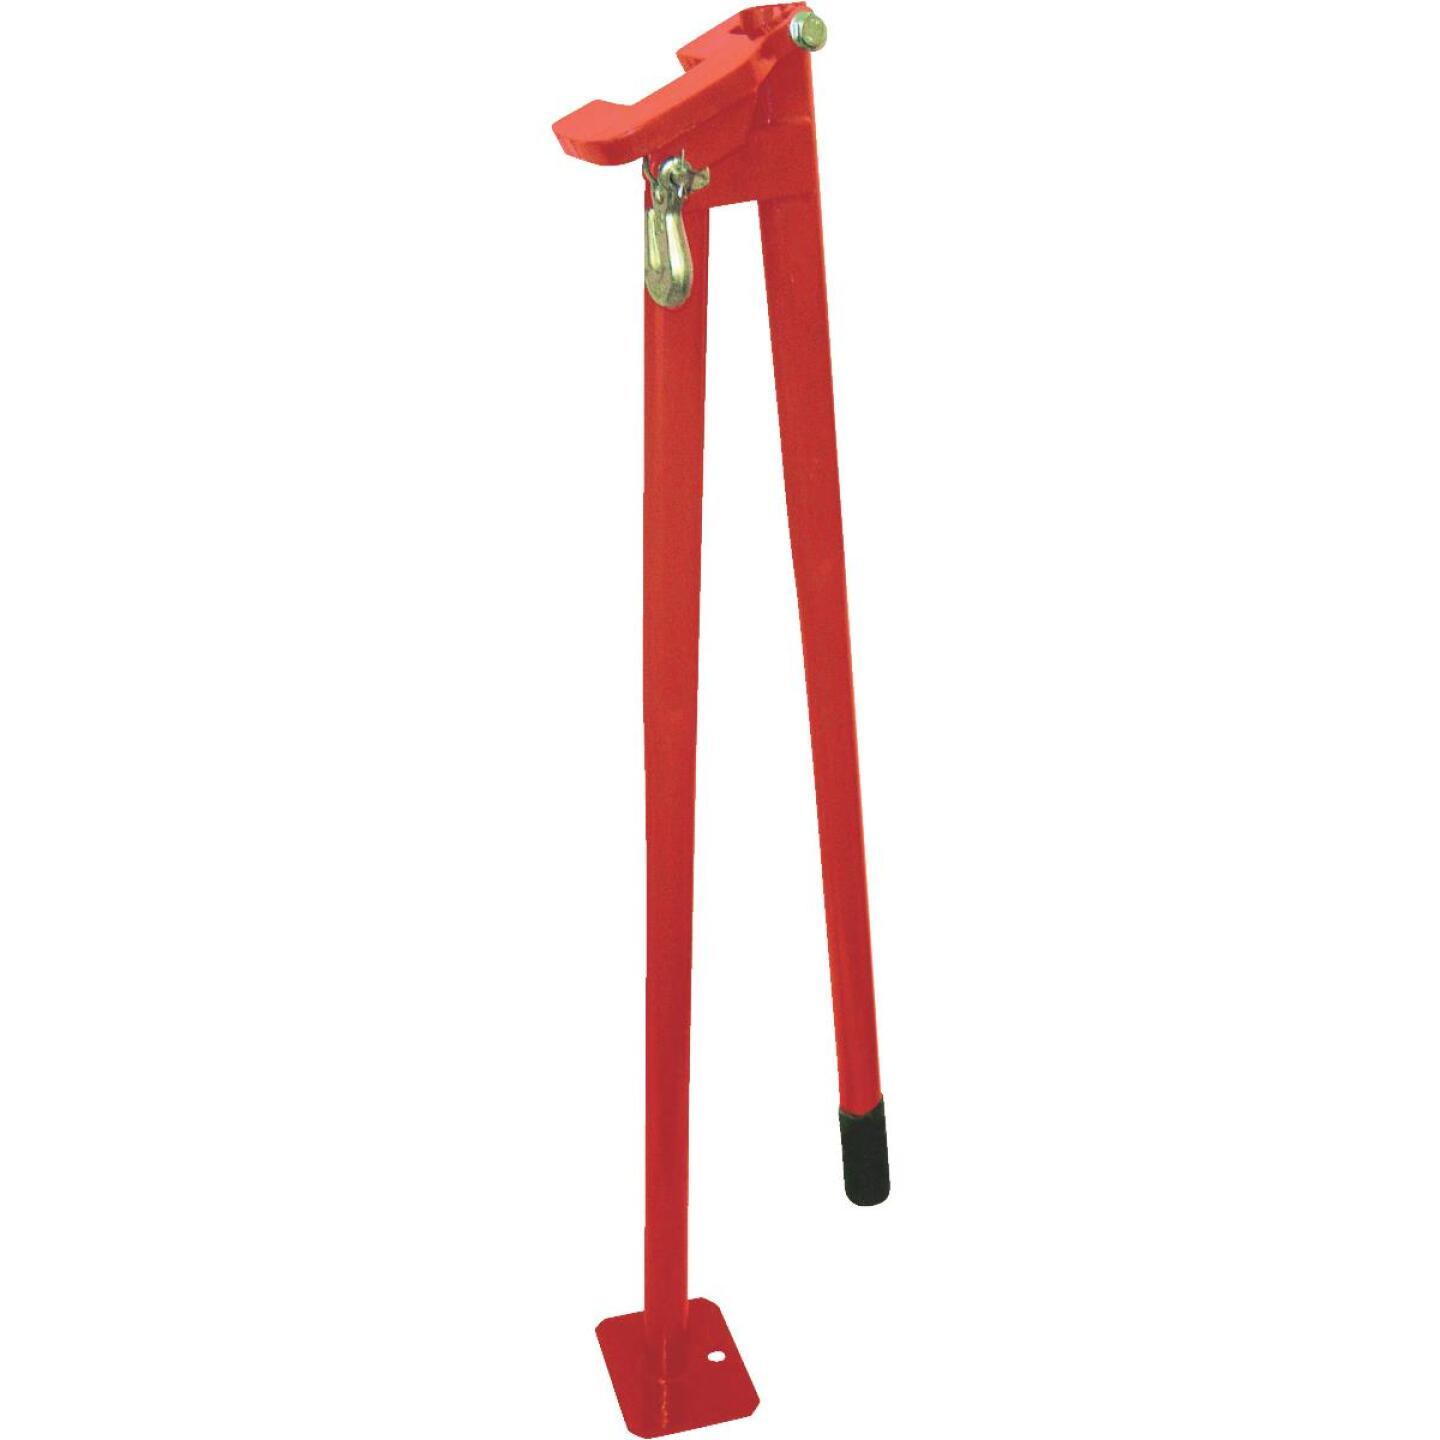 American Power Pull Steel Post Puller Image 1